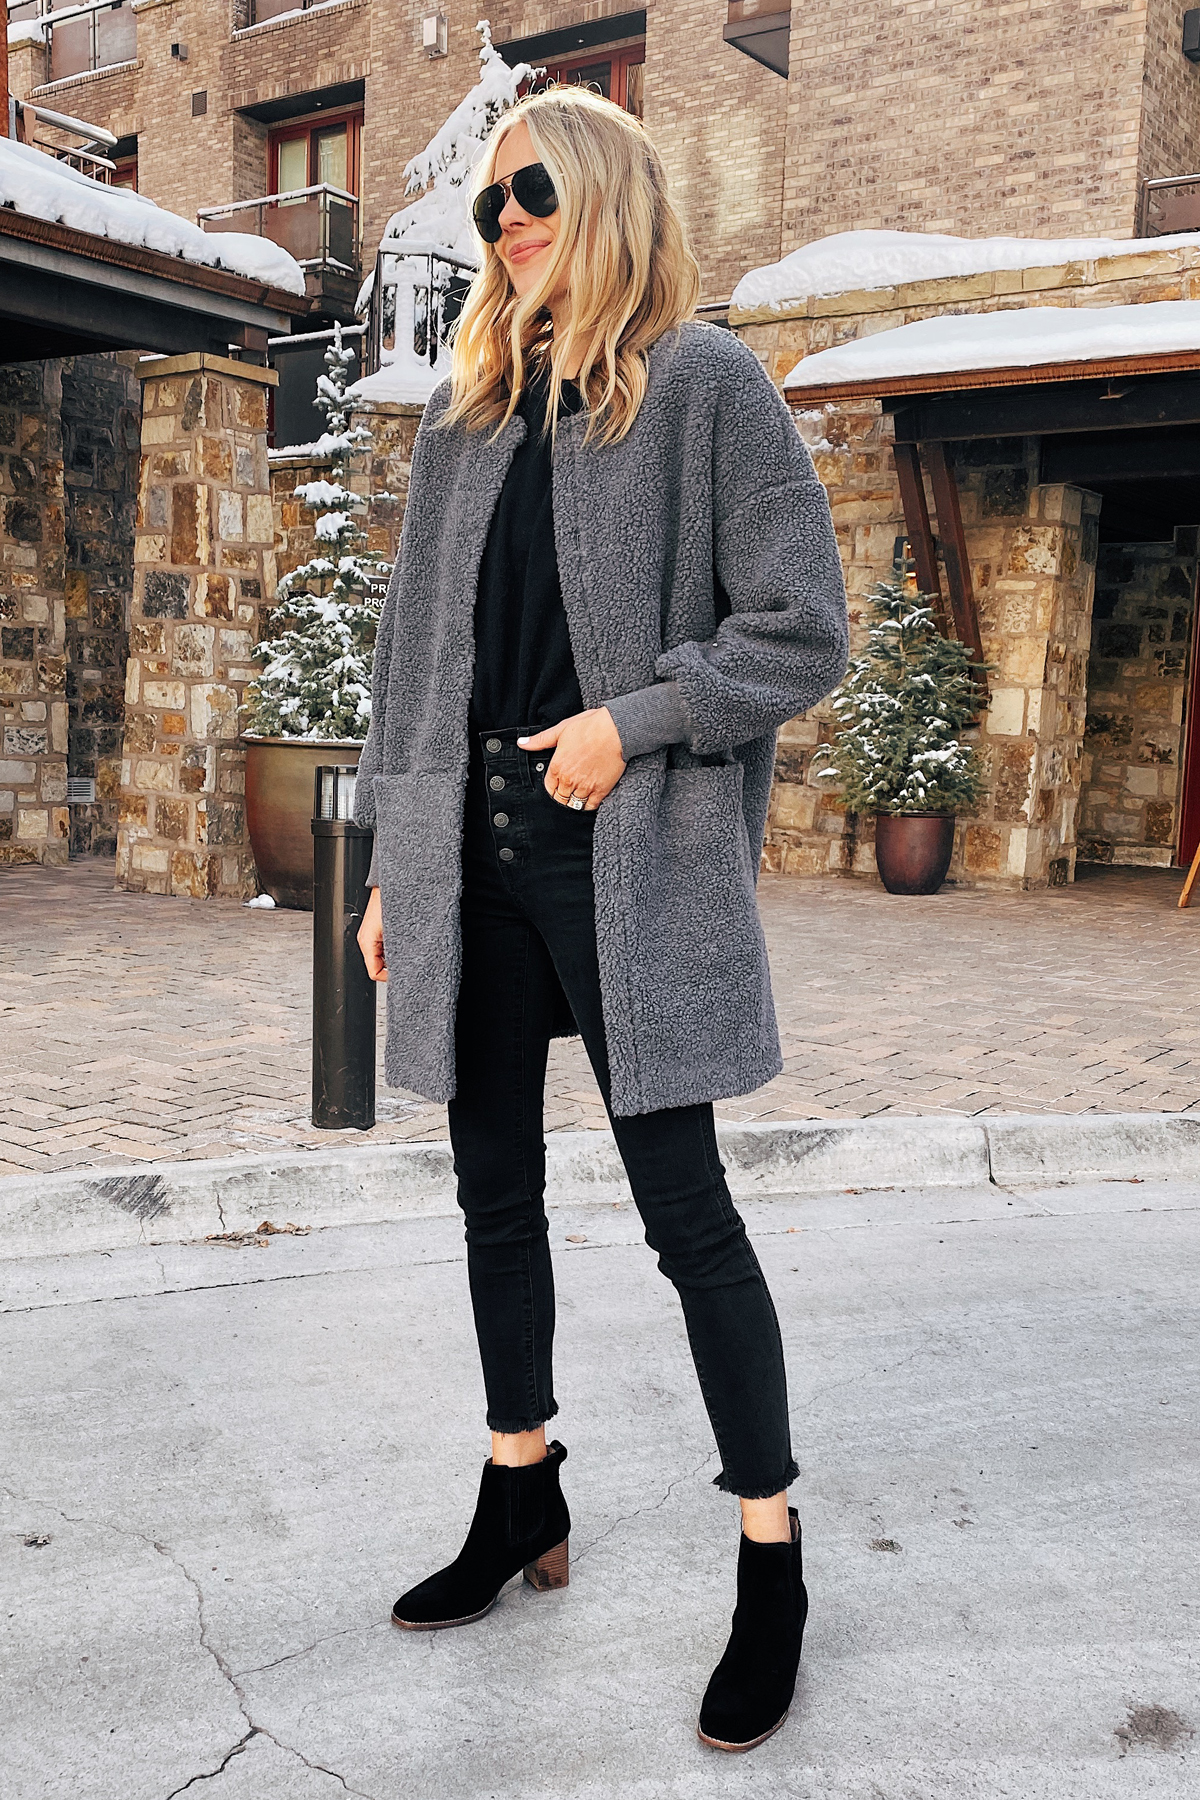 Fashion Jackson Wearing Madewell Grey Fleece Jacket Black Skinny Jeans Black Booties Winter Outfit Telluride Ski Trip